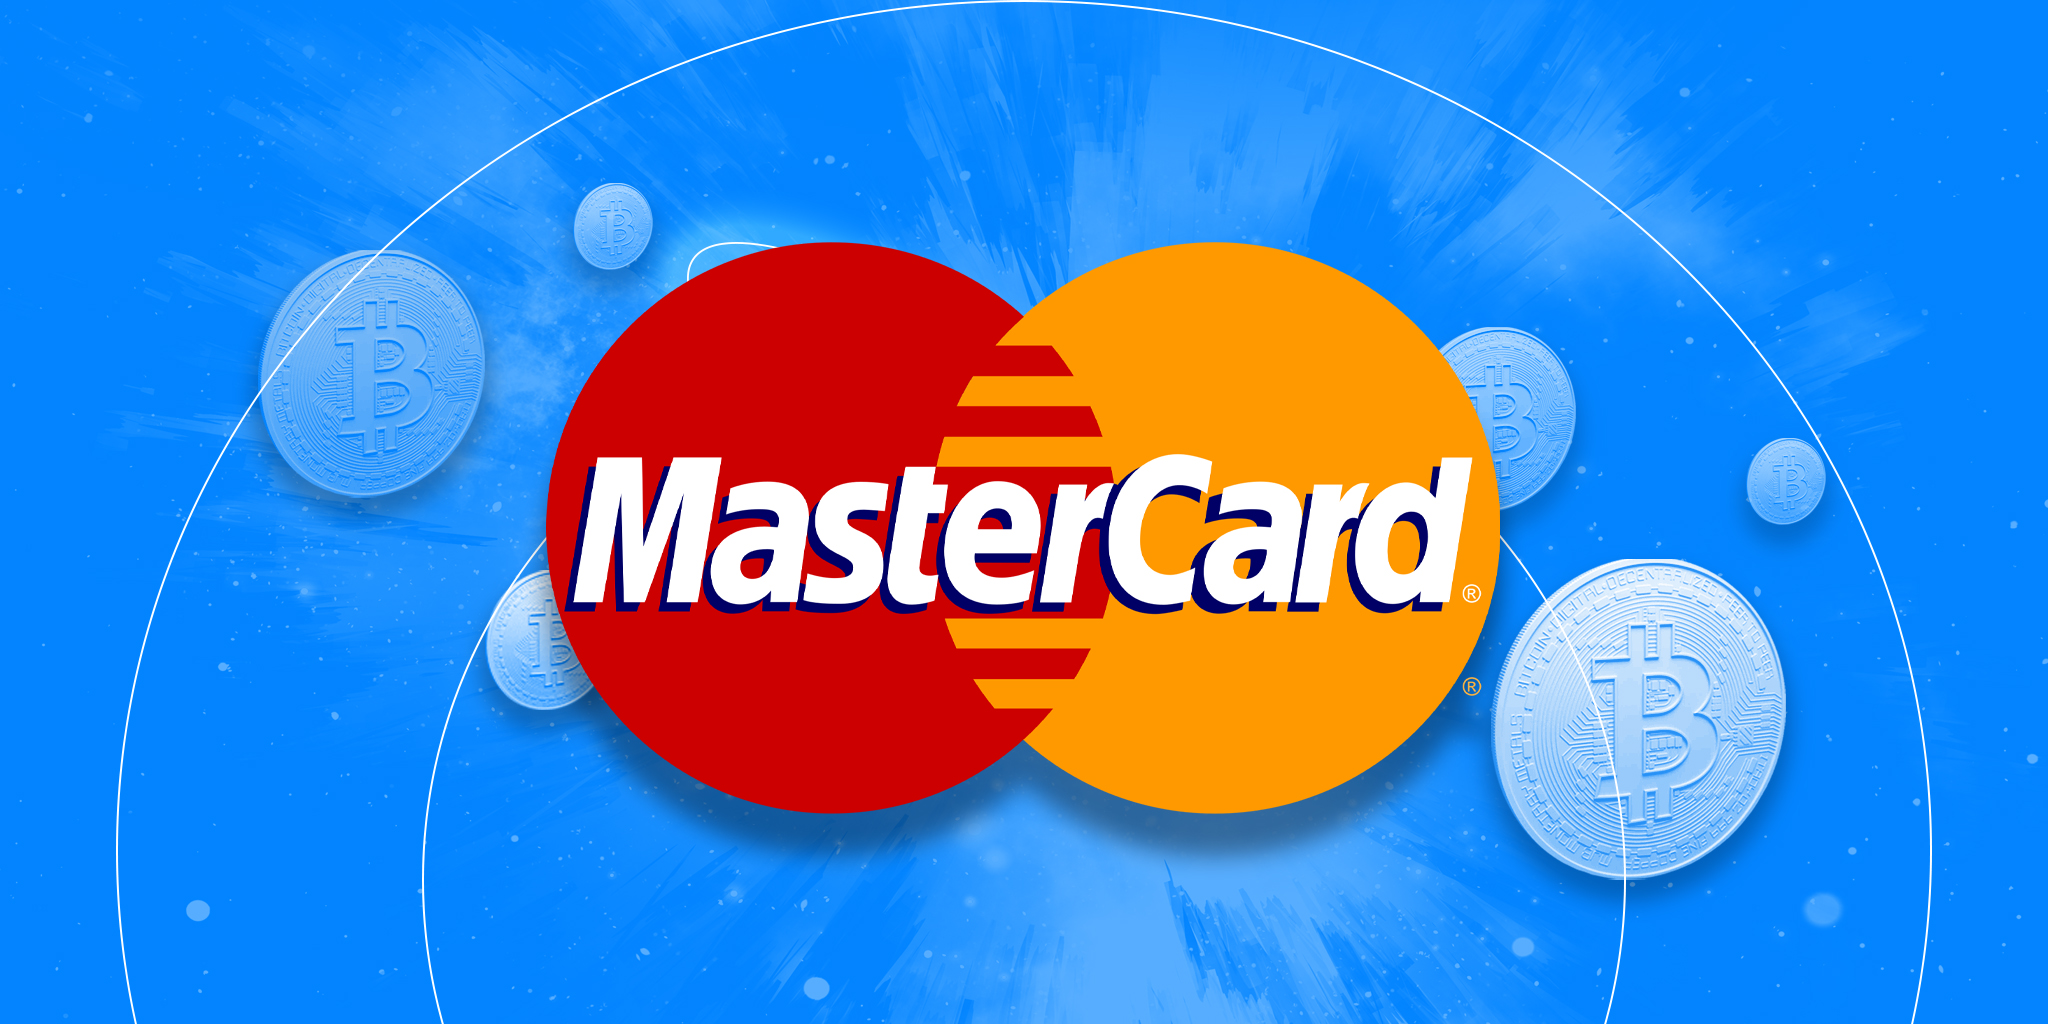 Mastercard partners with 7 crypto startups